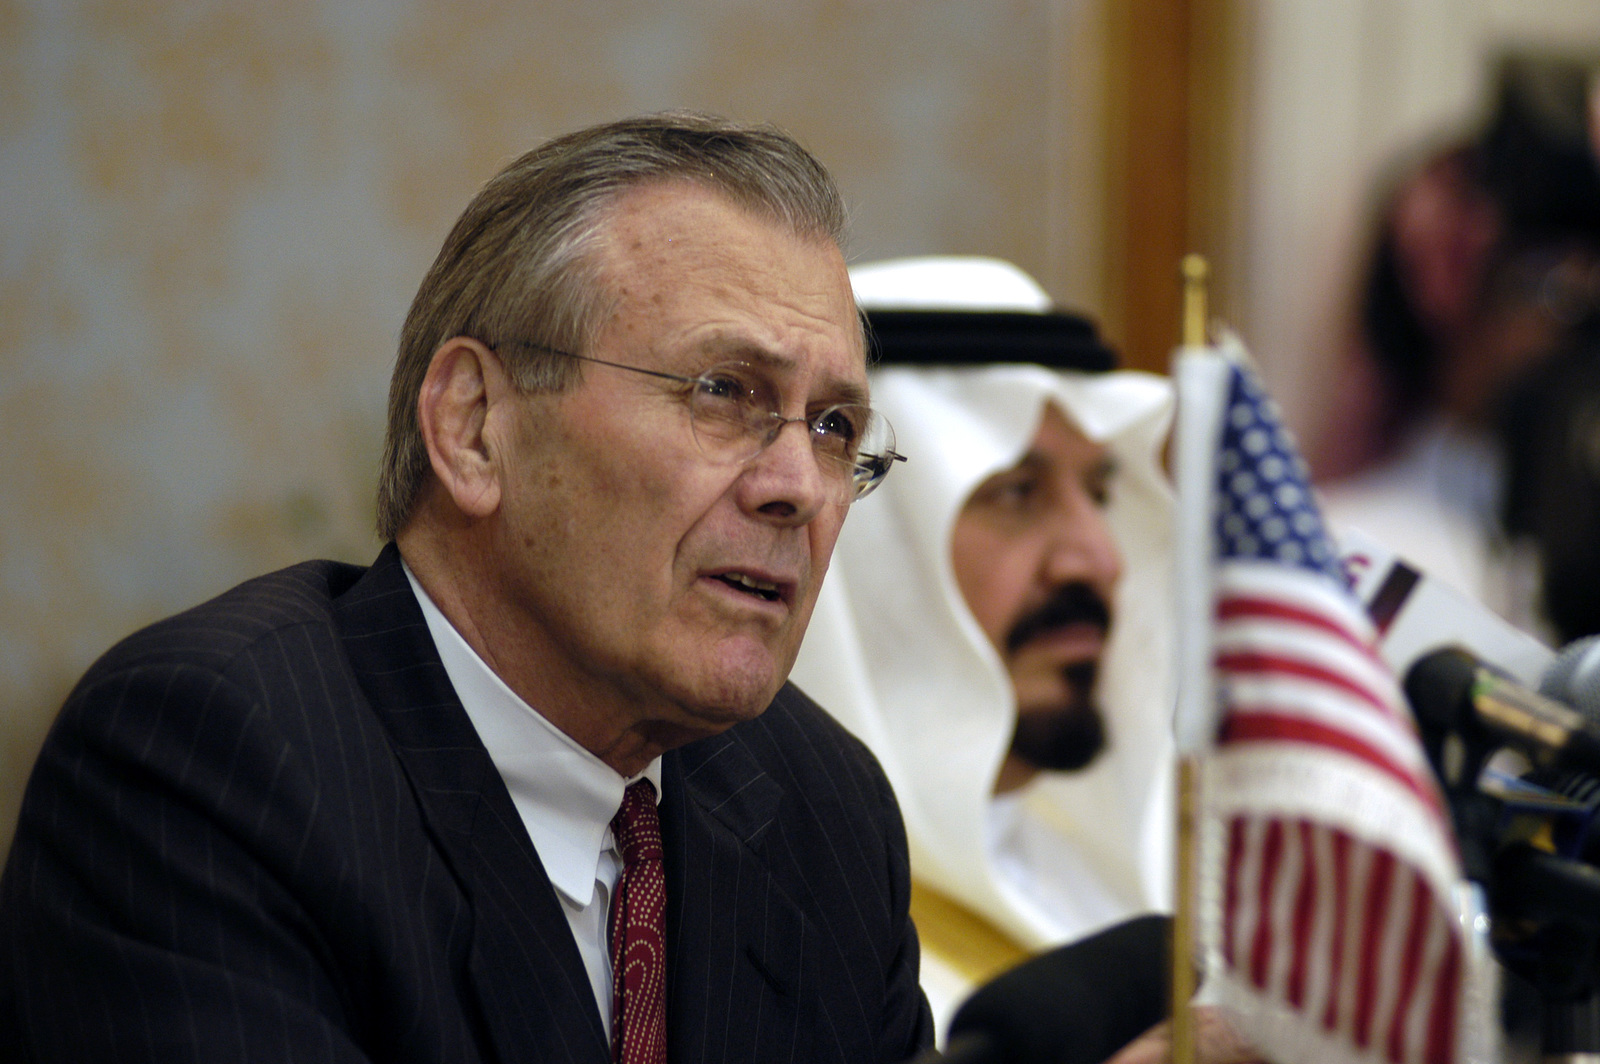 The Honorable Donald H. Rumsfeld (front), U.S. Secretary of Defense, answers a reporter's question, during a joint media availability session with His Royal Highness Prince Sultan bin Abdul Aziz Al Saud (back), Minster of Defence and Aviation for the Kingdom of Saudi Arabia, in the city of Riyadh, Riyadh (Ar Riyad) Province, Kingdom of Saudi Arabia, on April 29, 2003, while Secretary Rumsfeld is on an official seven day tour of the region.  OSD Package No. A07D-00575 (DOD PHOTO by Helene C. Stikkel) (Released)